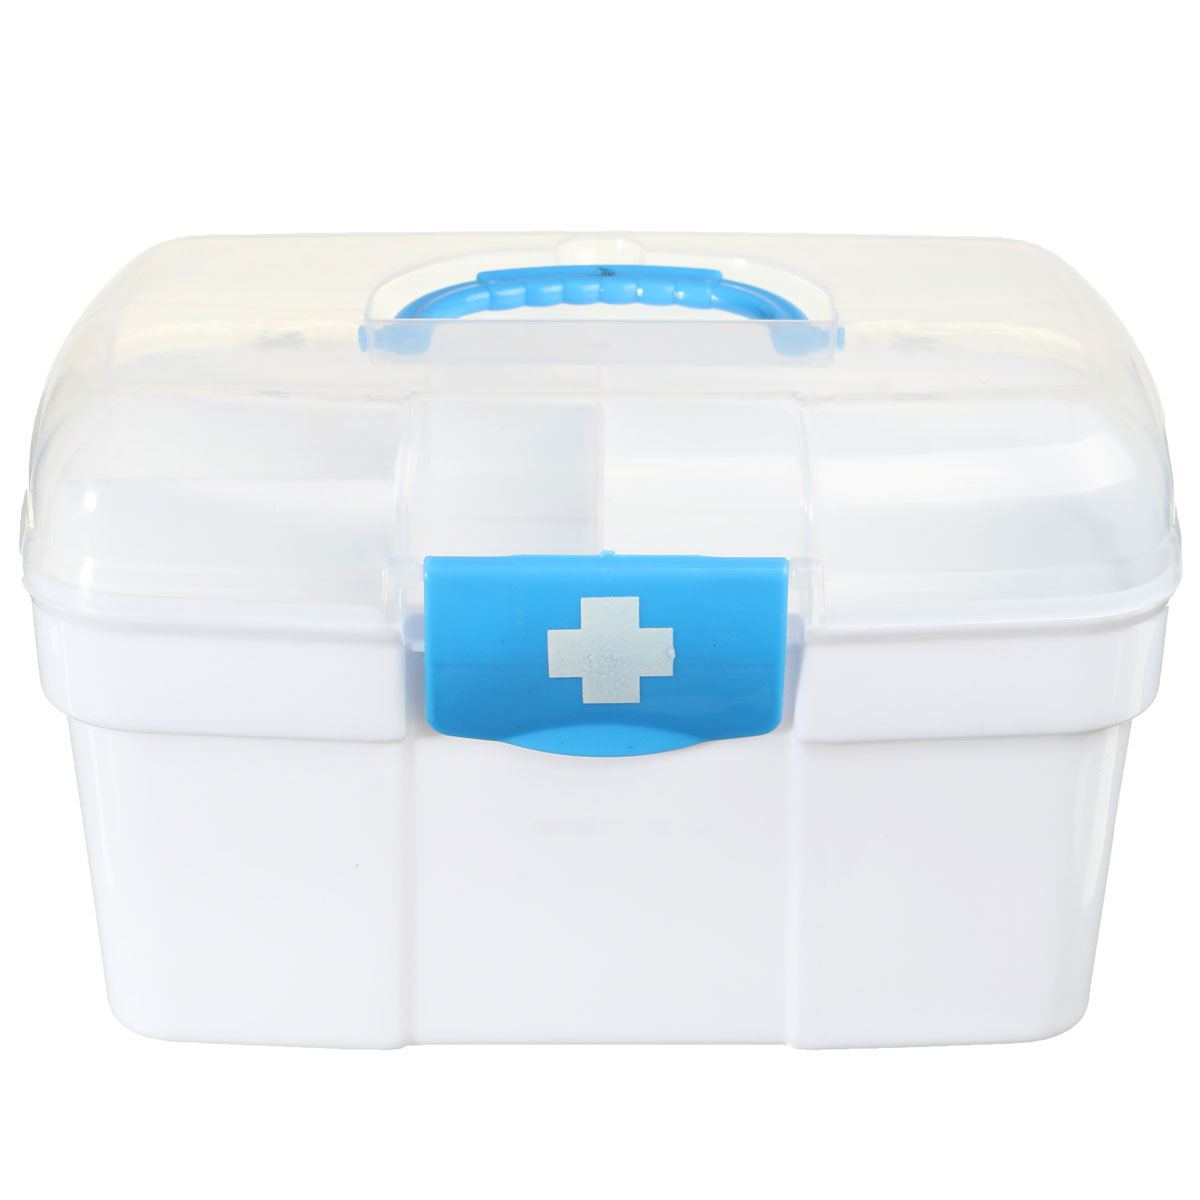 NEW Safurance Plastic 2 Layers Home Medicine Chest First Aid Kit Holder Storage Box Emergency Kits Security Safety new gbj free shipping home aluminum medical cabinet multi layer medical treatment first aid kit medicine storage portable